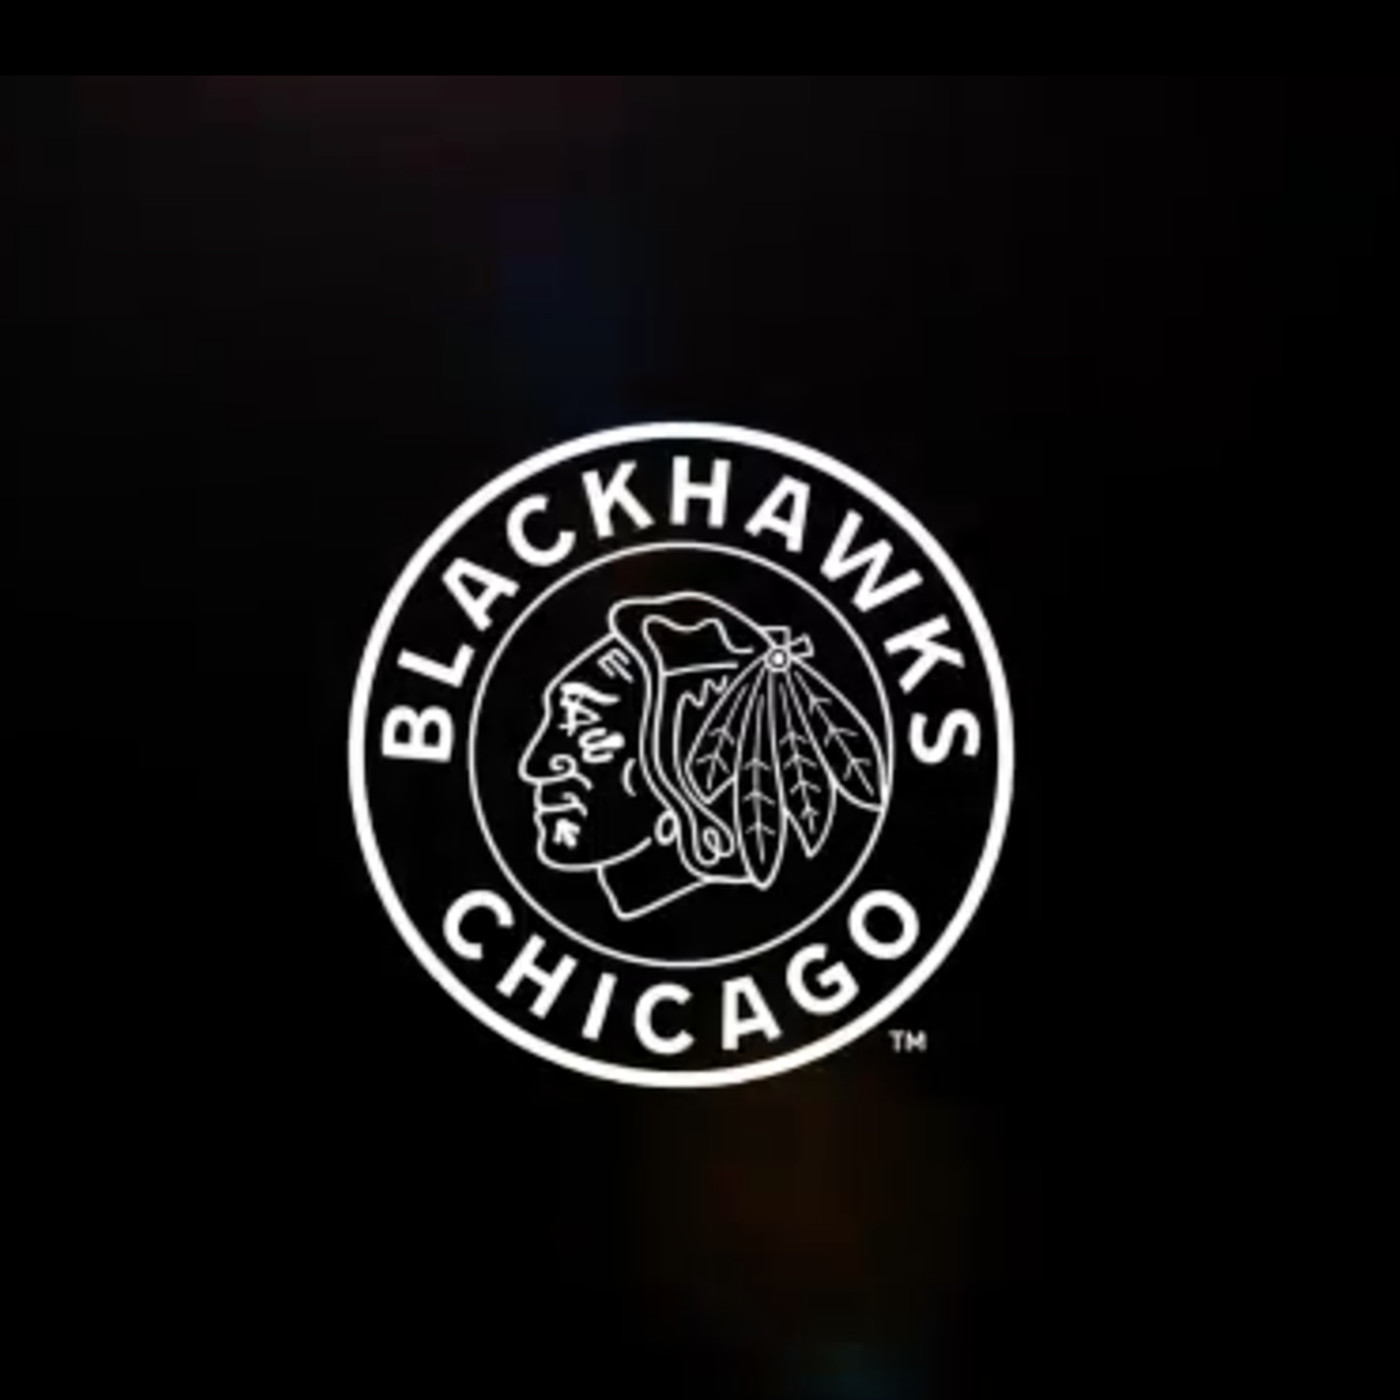 912598940b3 Blackhawks reveal 2019 Winter Classic jersey logo - Second City Hockey